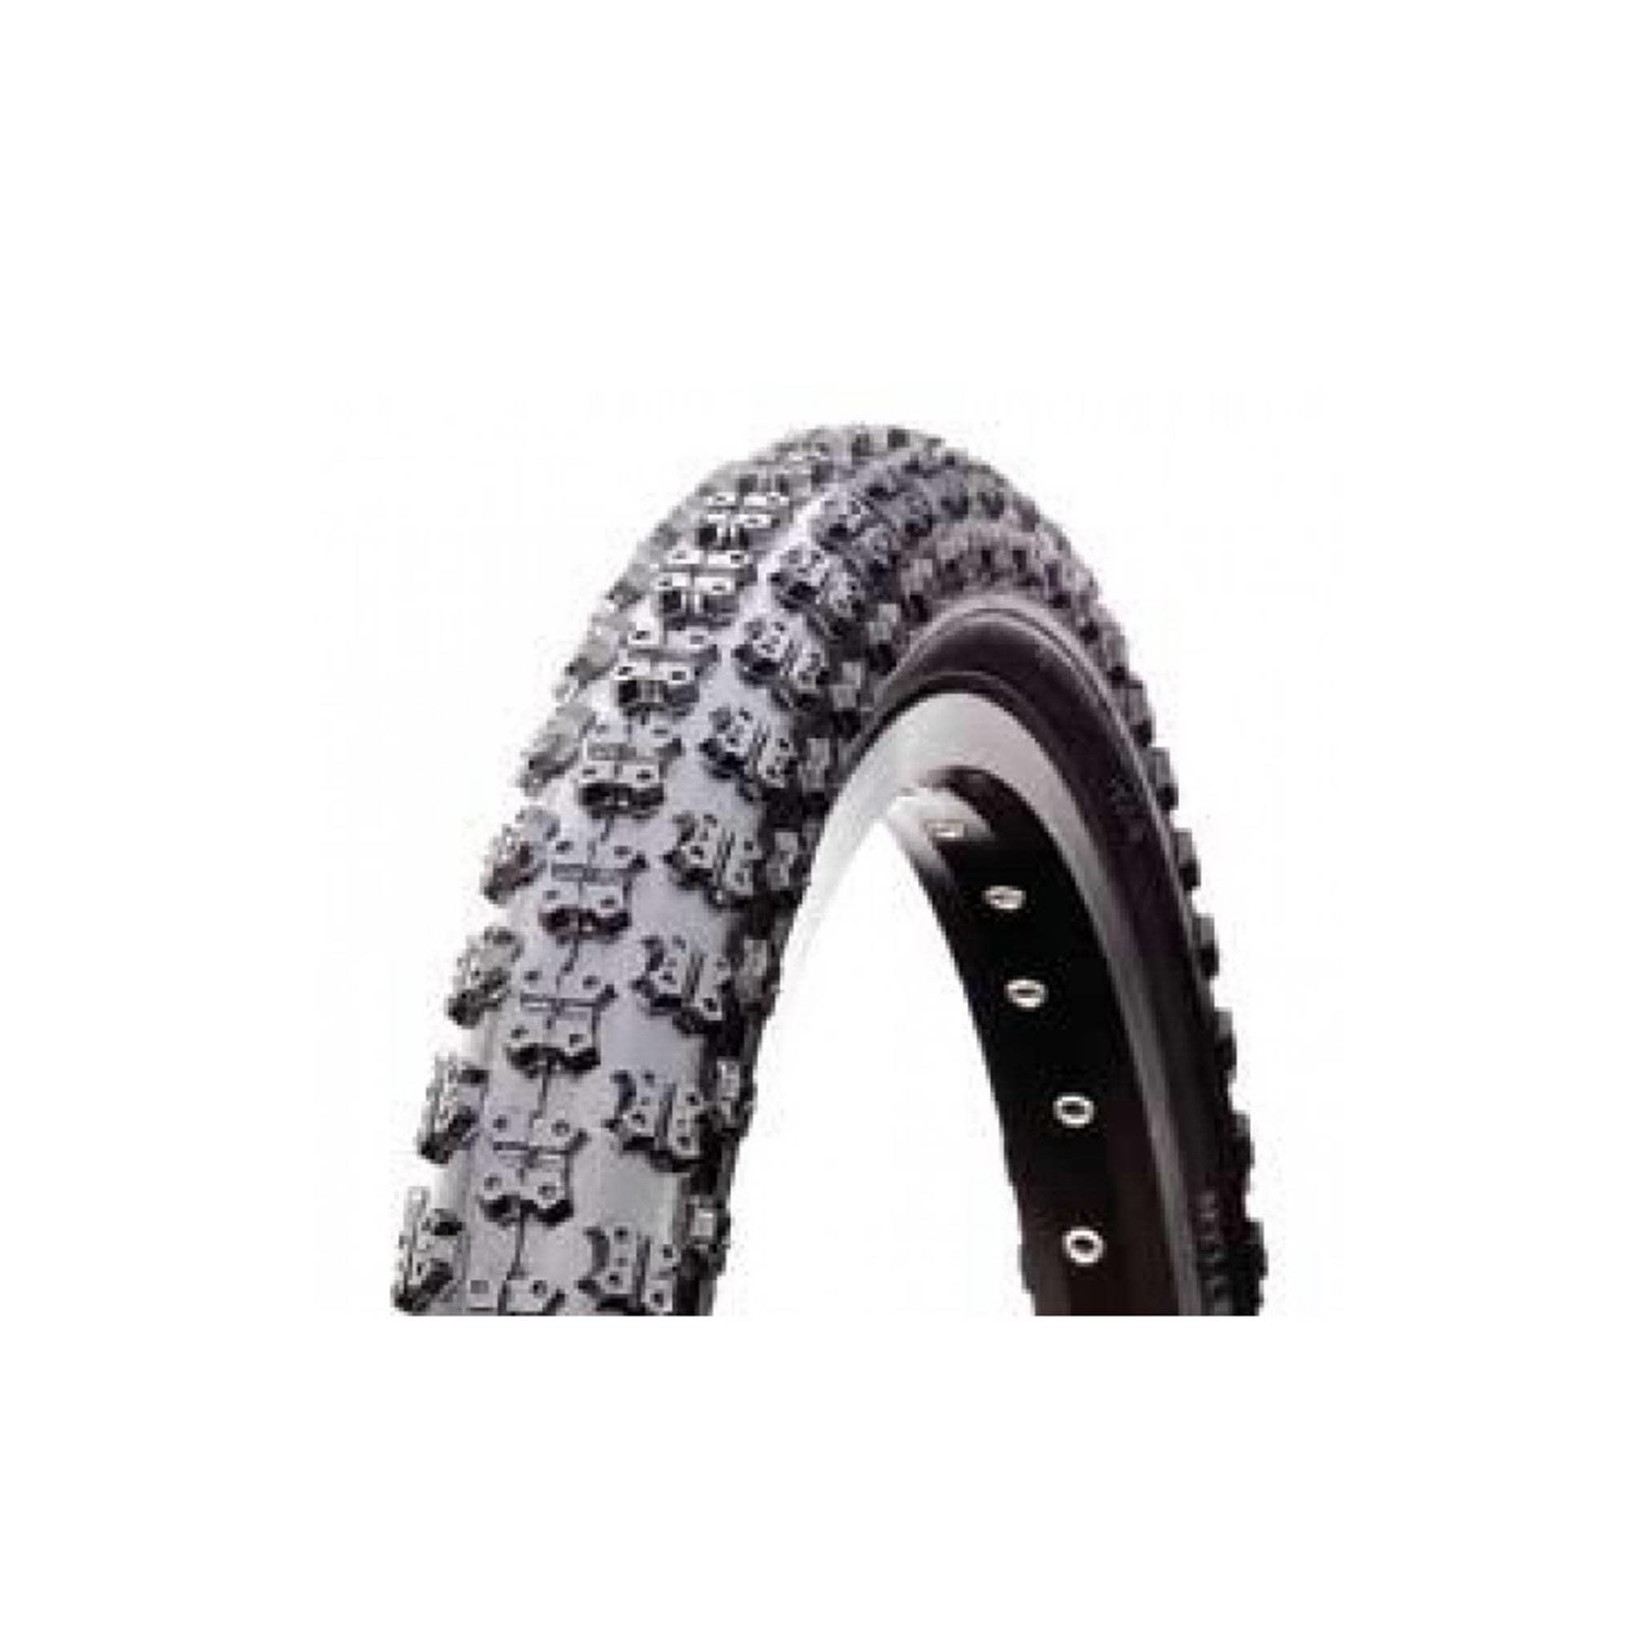 Chaoyang 16 x  1.75 Knobbly Tyre